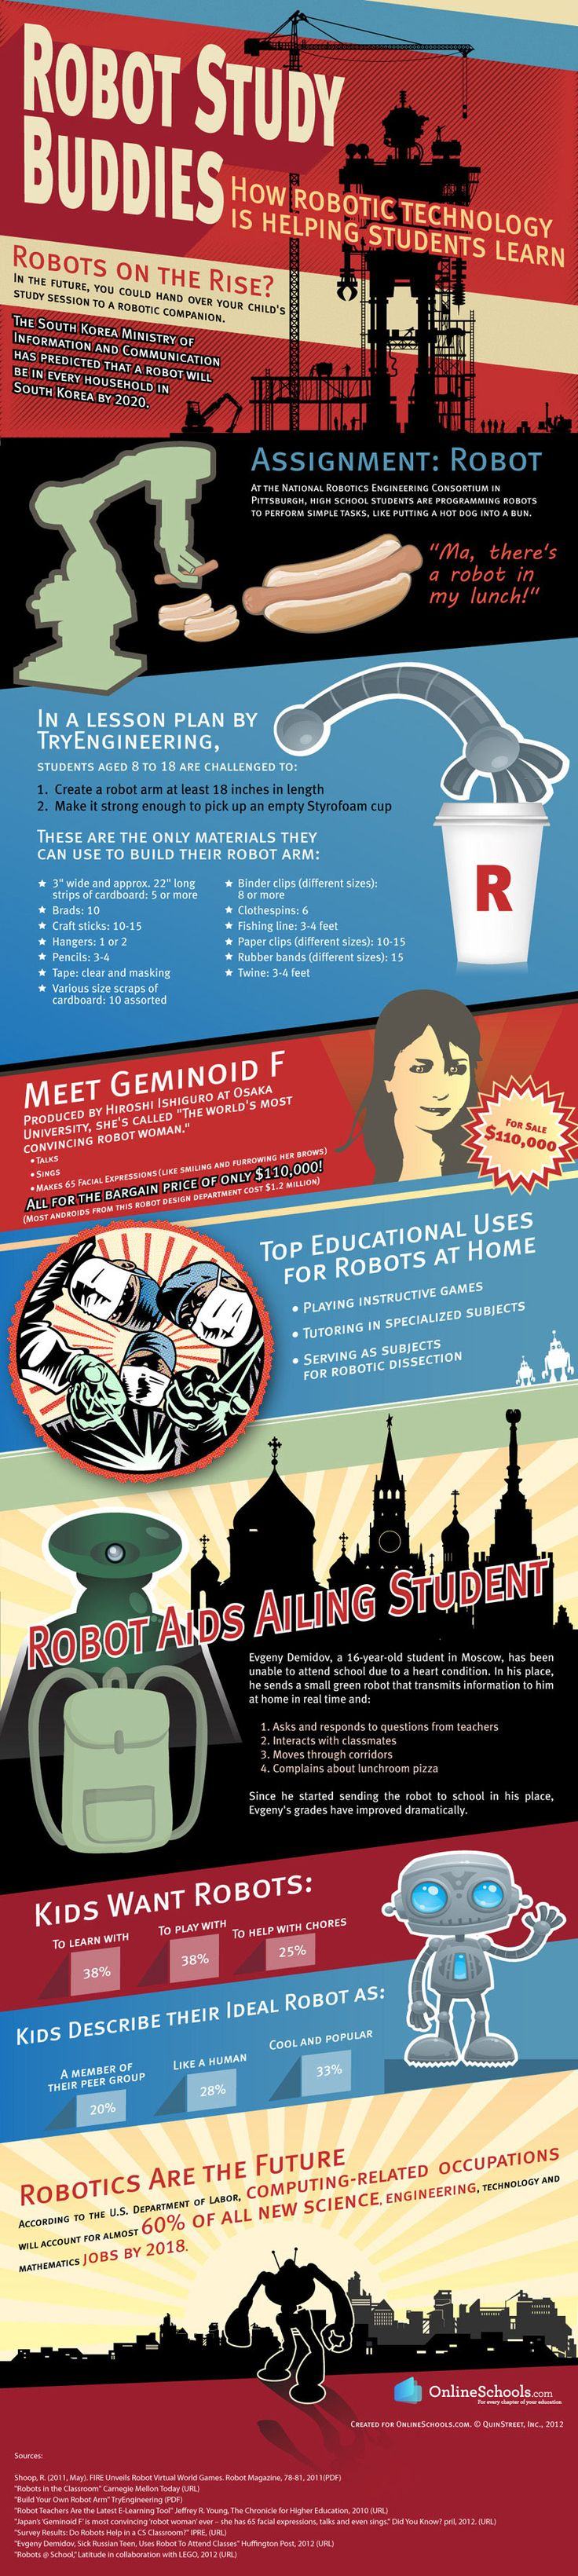 Robots as Teaching Aides InfographicBuddy Infographic, Study Buddy, Education Infographic, Robots Technology, Teaching Aid, Helpful Student, Aid Infographic, Robots Study, South Korea